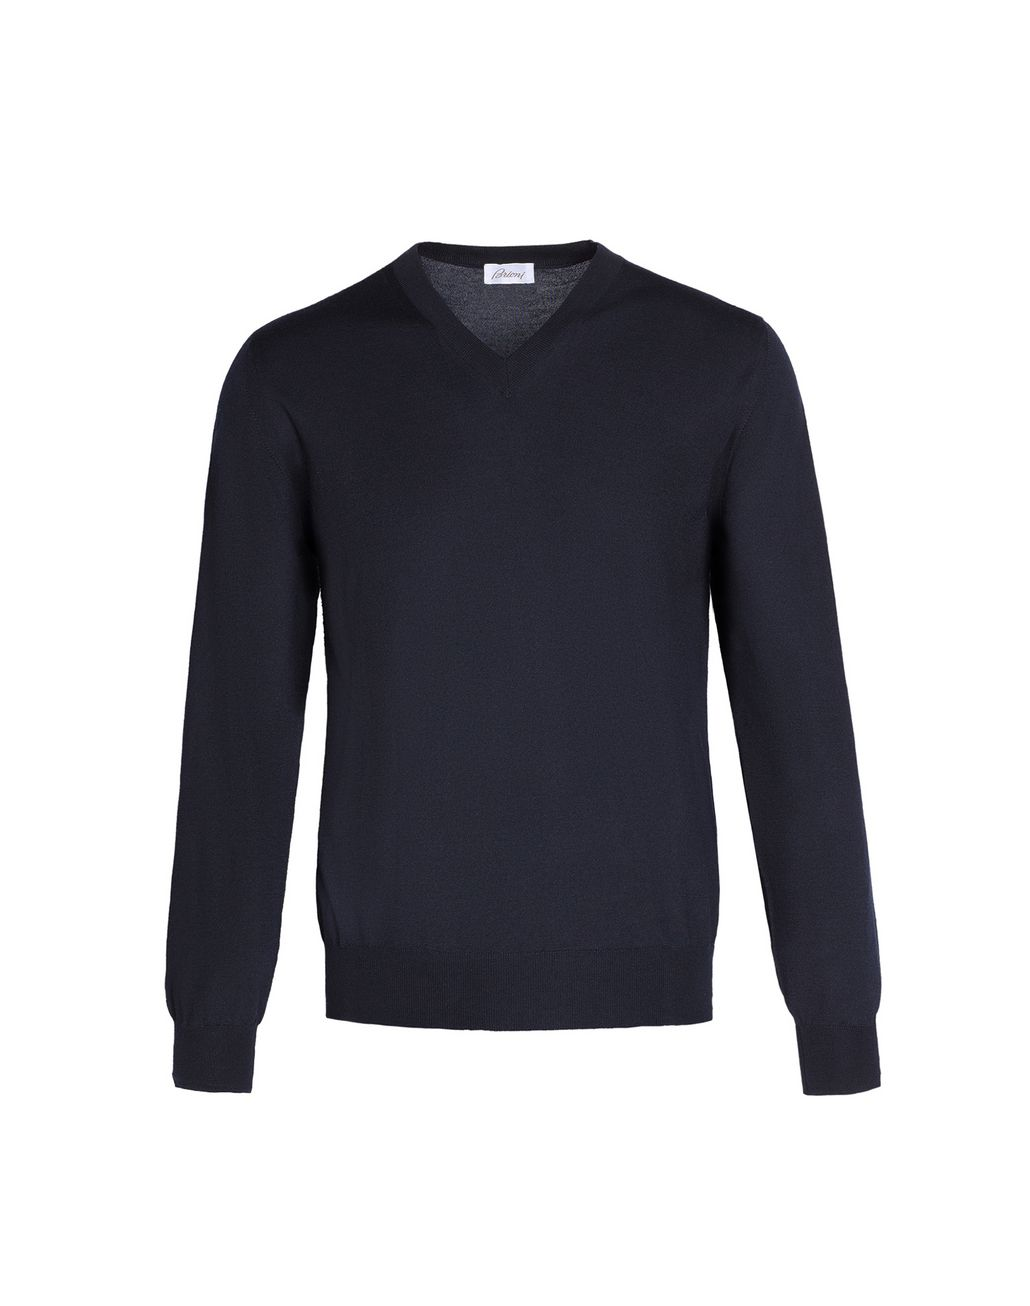 BRIONI Navy Blue V-Neck Sweater Knitwear U f